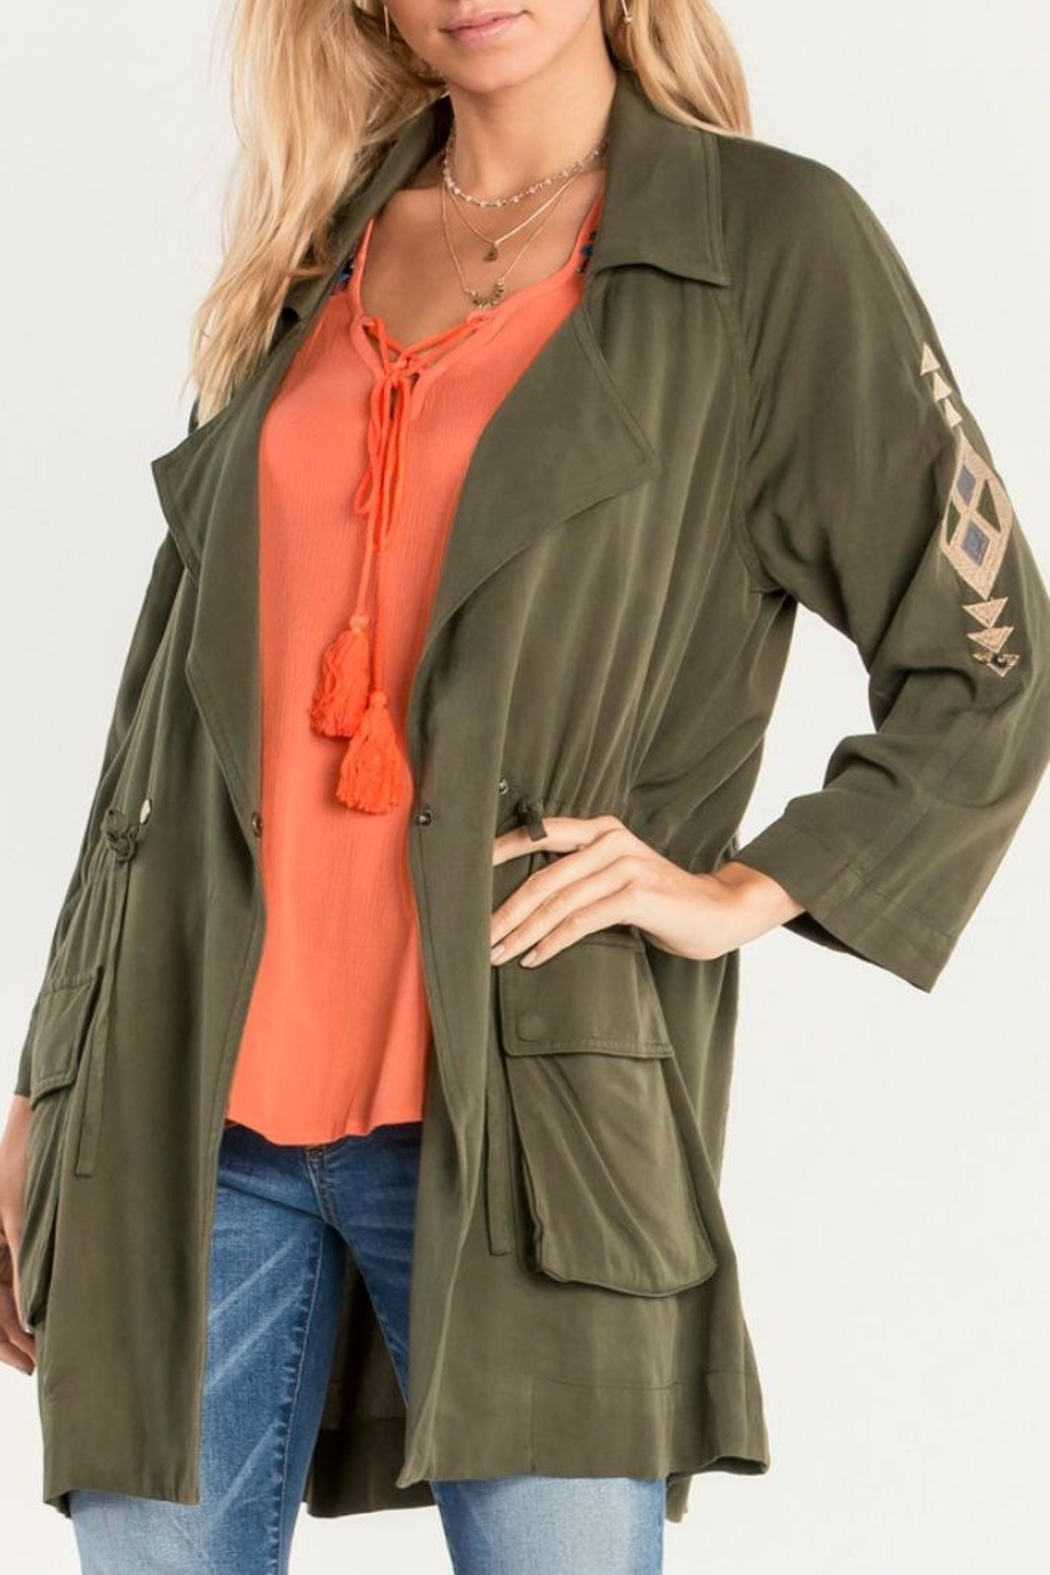 Miss Me Olive Embroidered Utility Jacket - Front Full Image